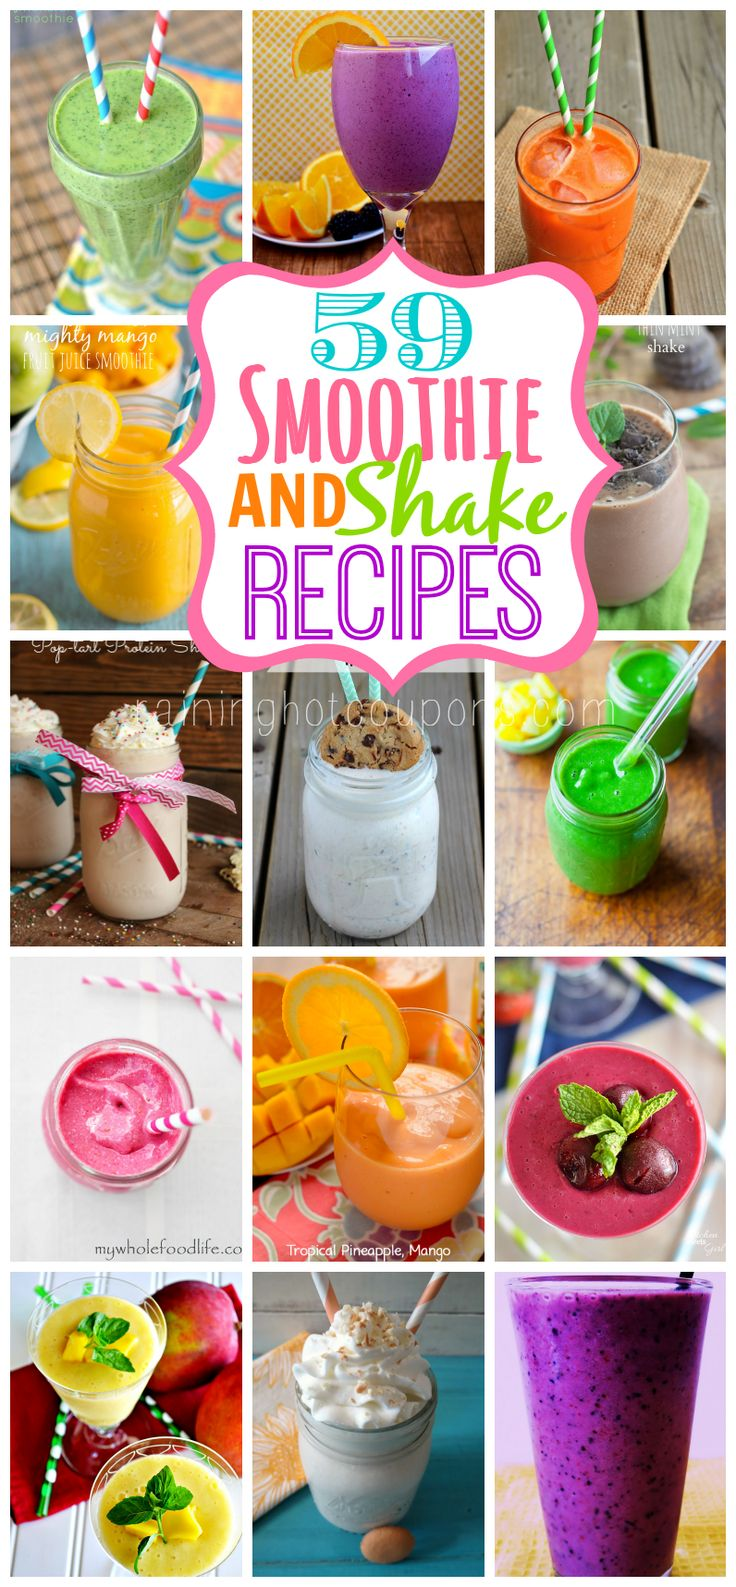 Since I'm having smoothies for breakfast and lunch these days... 59 Smoothie and Shake Recipes